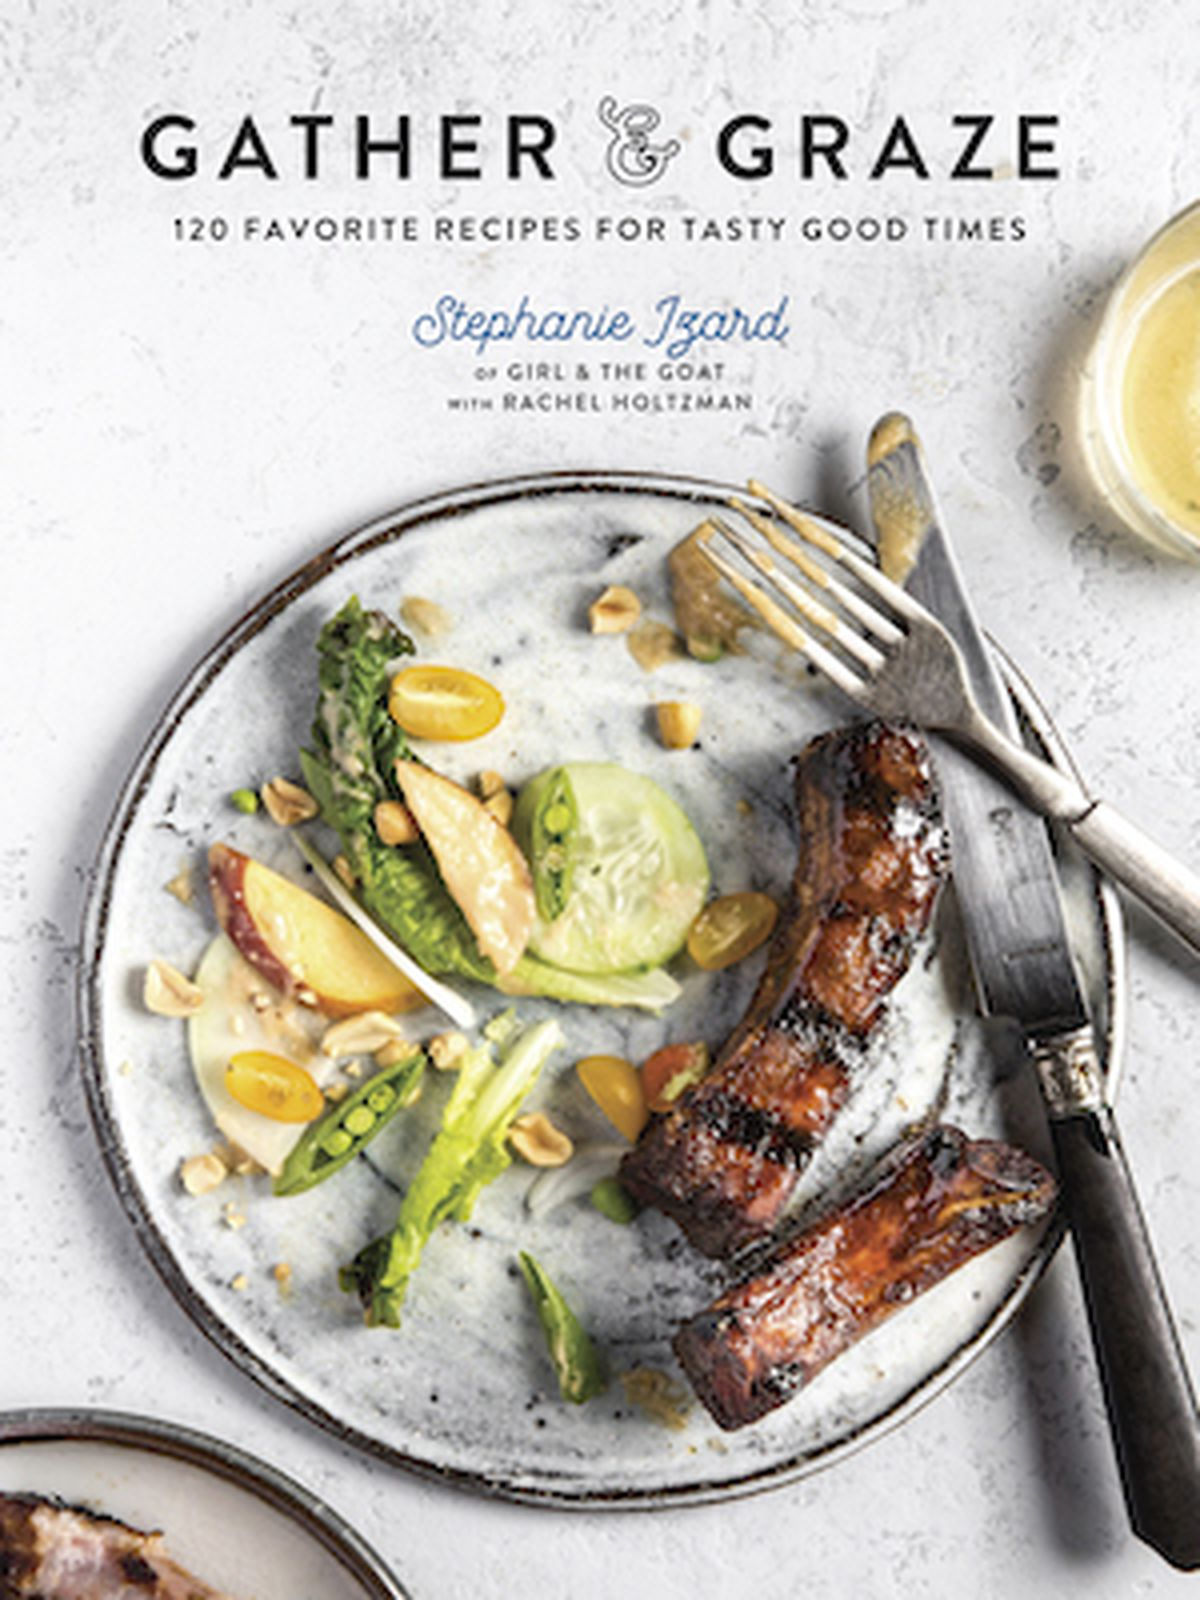 Best new cookbooks spring 2018 eater gather forumfinder Image collections